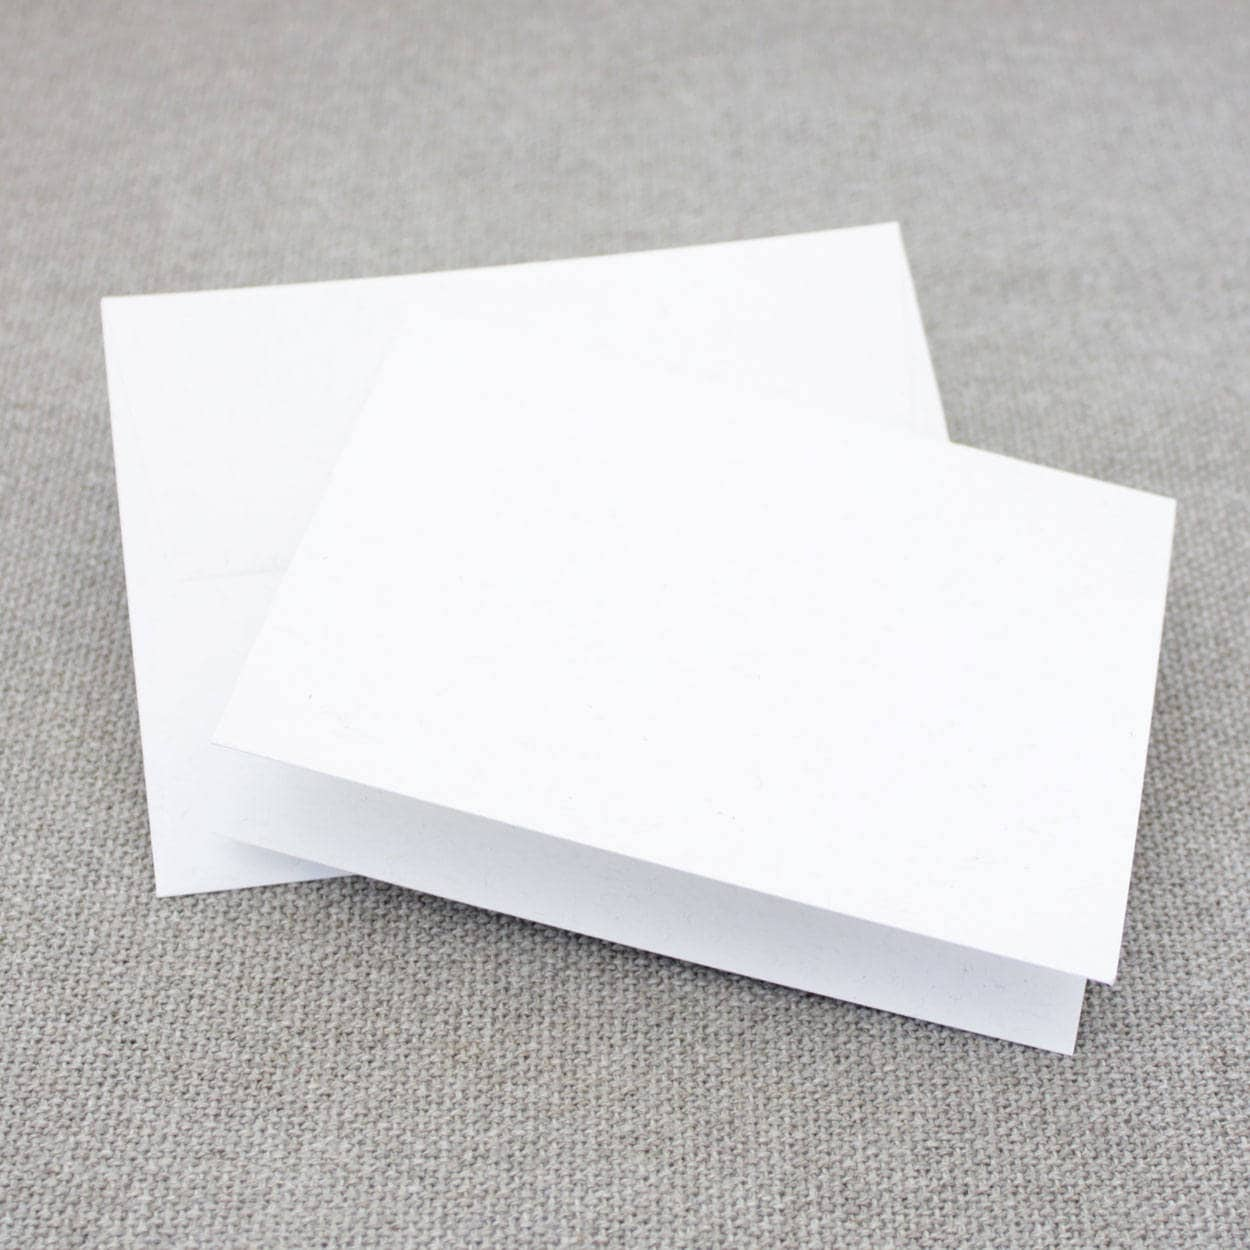 Blank Notecards With Envelope Size A2 White Cards And Envelopes